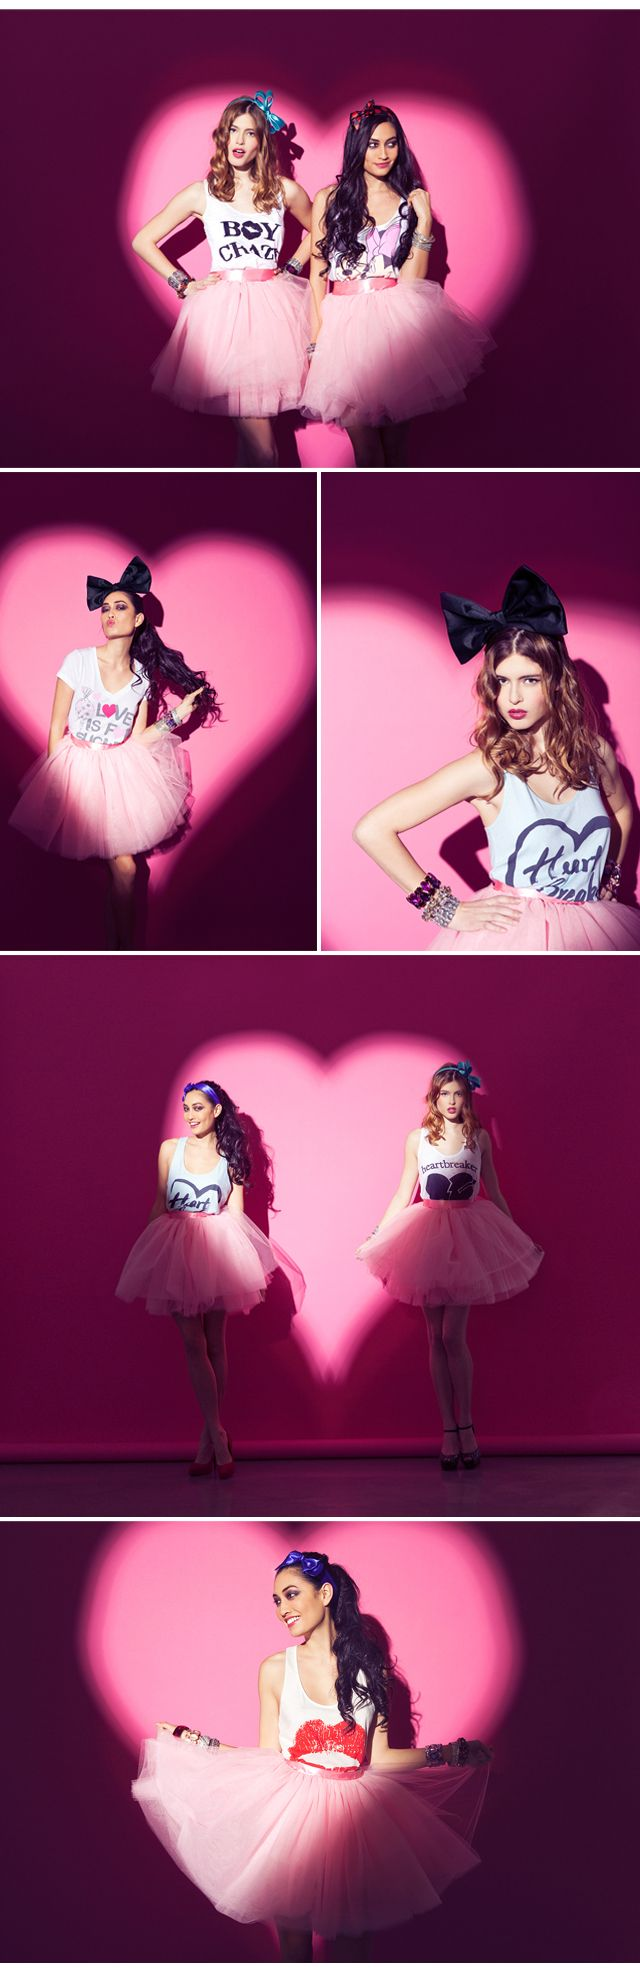 A fun idea for a bachelorette/hen's party - create a hot pink love light against a wall as your photobooth. Or you could use a white love light for a wedding.